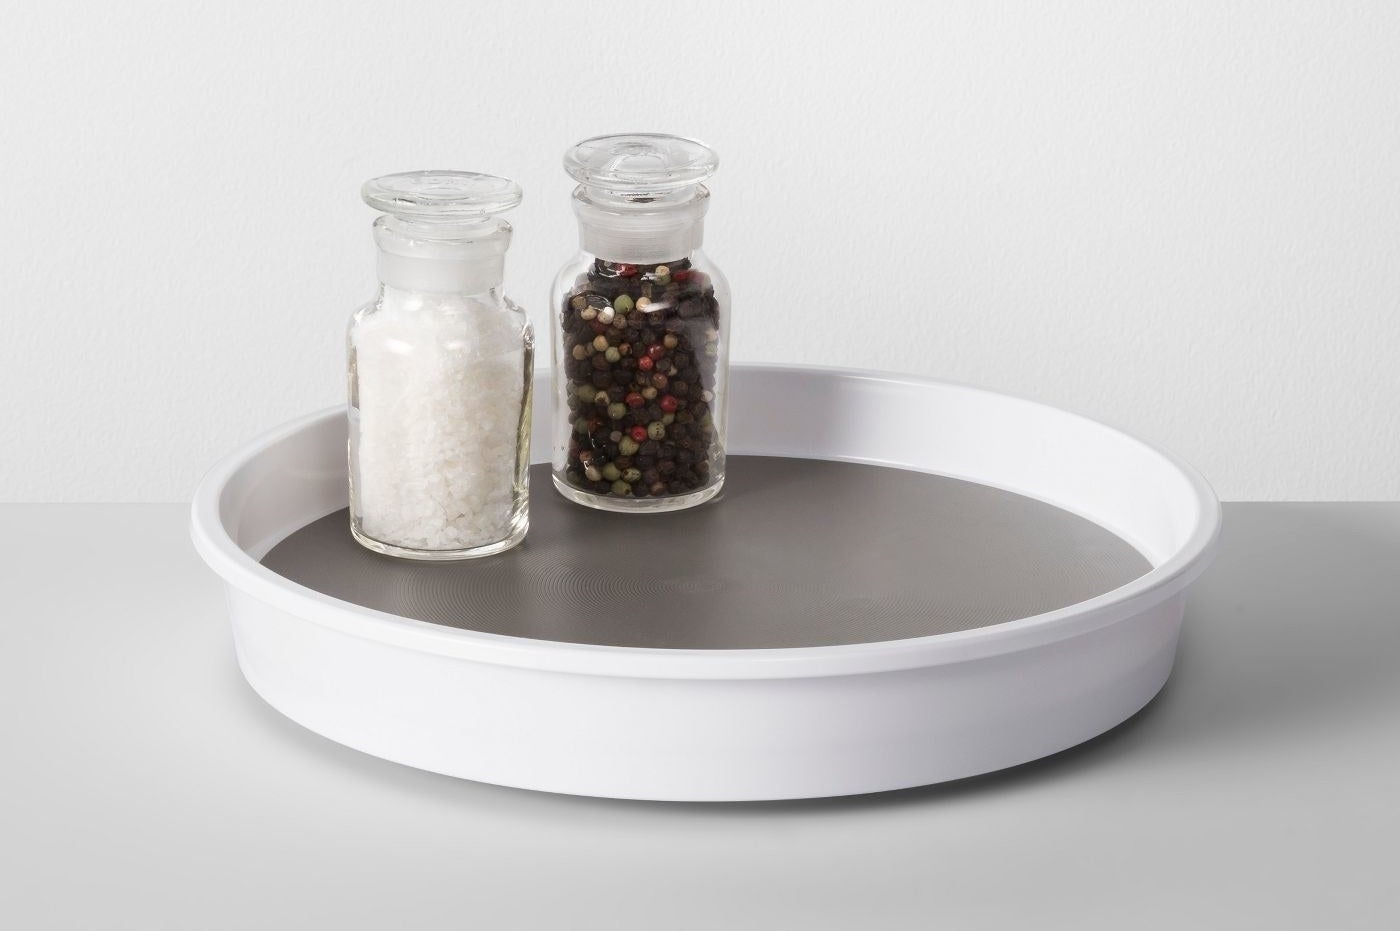 cabinet turntable with salt and pepper grinders on it